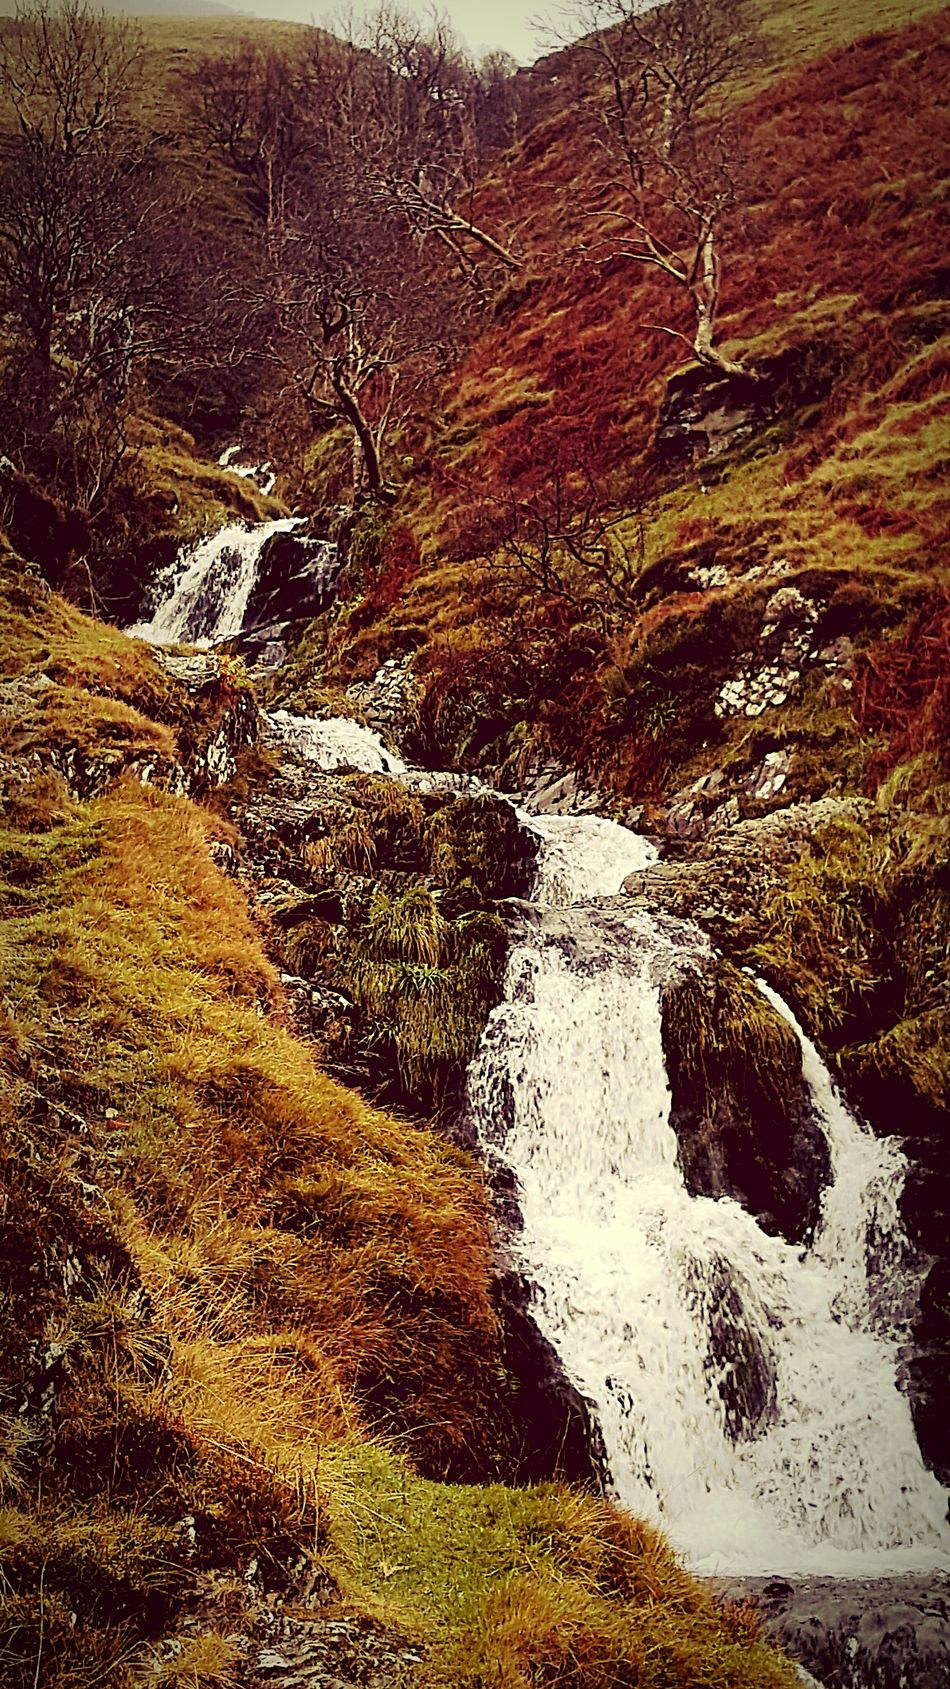 Taking Photos Waterfall_collection Water_collection Waterscape Waterfalls Waterfall Hillside Hill Side Views Enjoying The View Scenery Shots Scotland Relaxing Amazing View Autumn Beauty Autumn 2015 Autumn Colors Autumn🍁🍁🍁 Autumn Collection Beautiful Day Waterporn Water Falls Natural Beauty